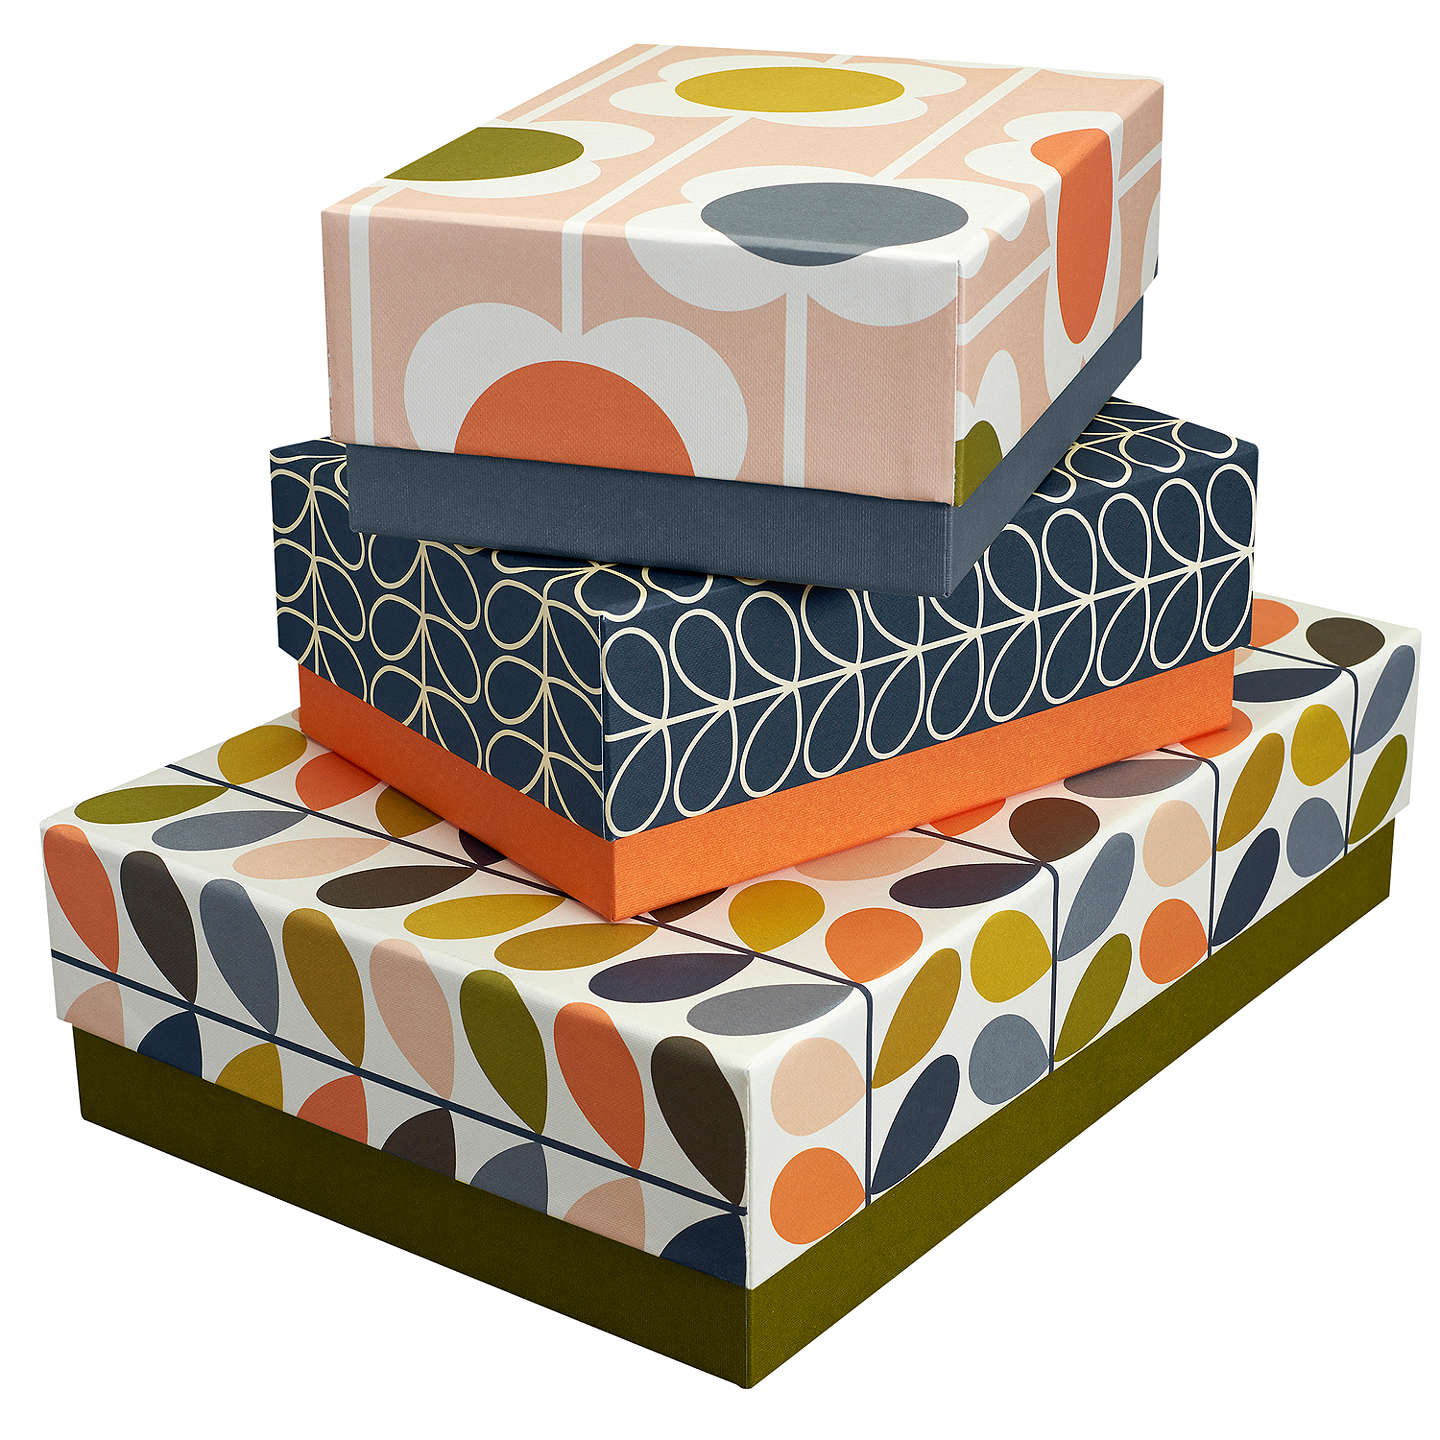 BuyOrla Kiely Floral Storage Boxes, Set of 3 Online at johnlewis.com